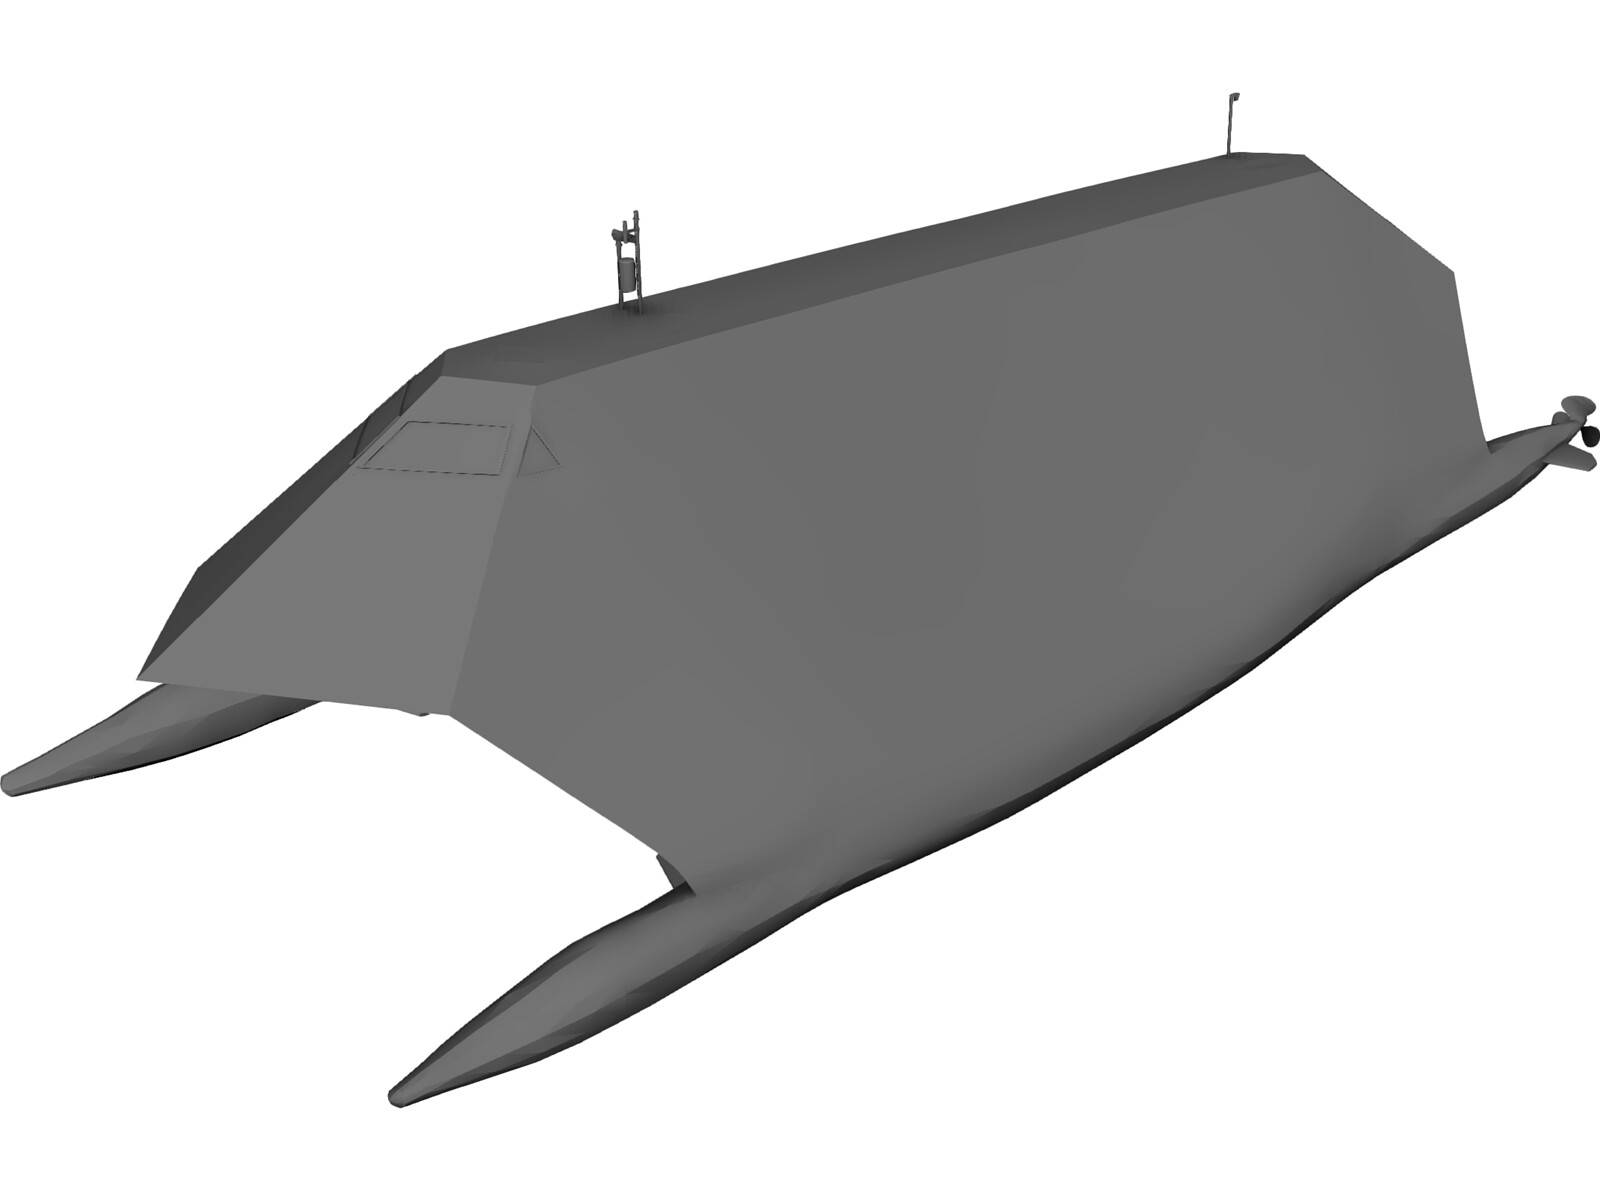 Lockheed Sea Shadow 3D Model